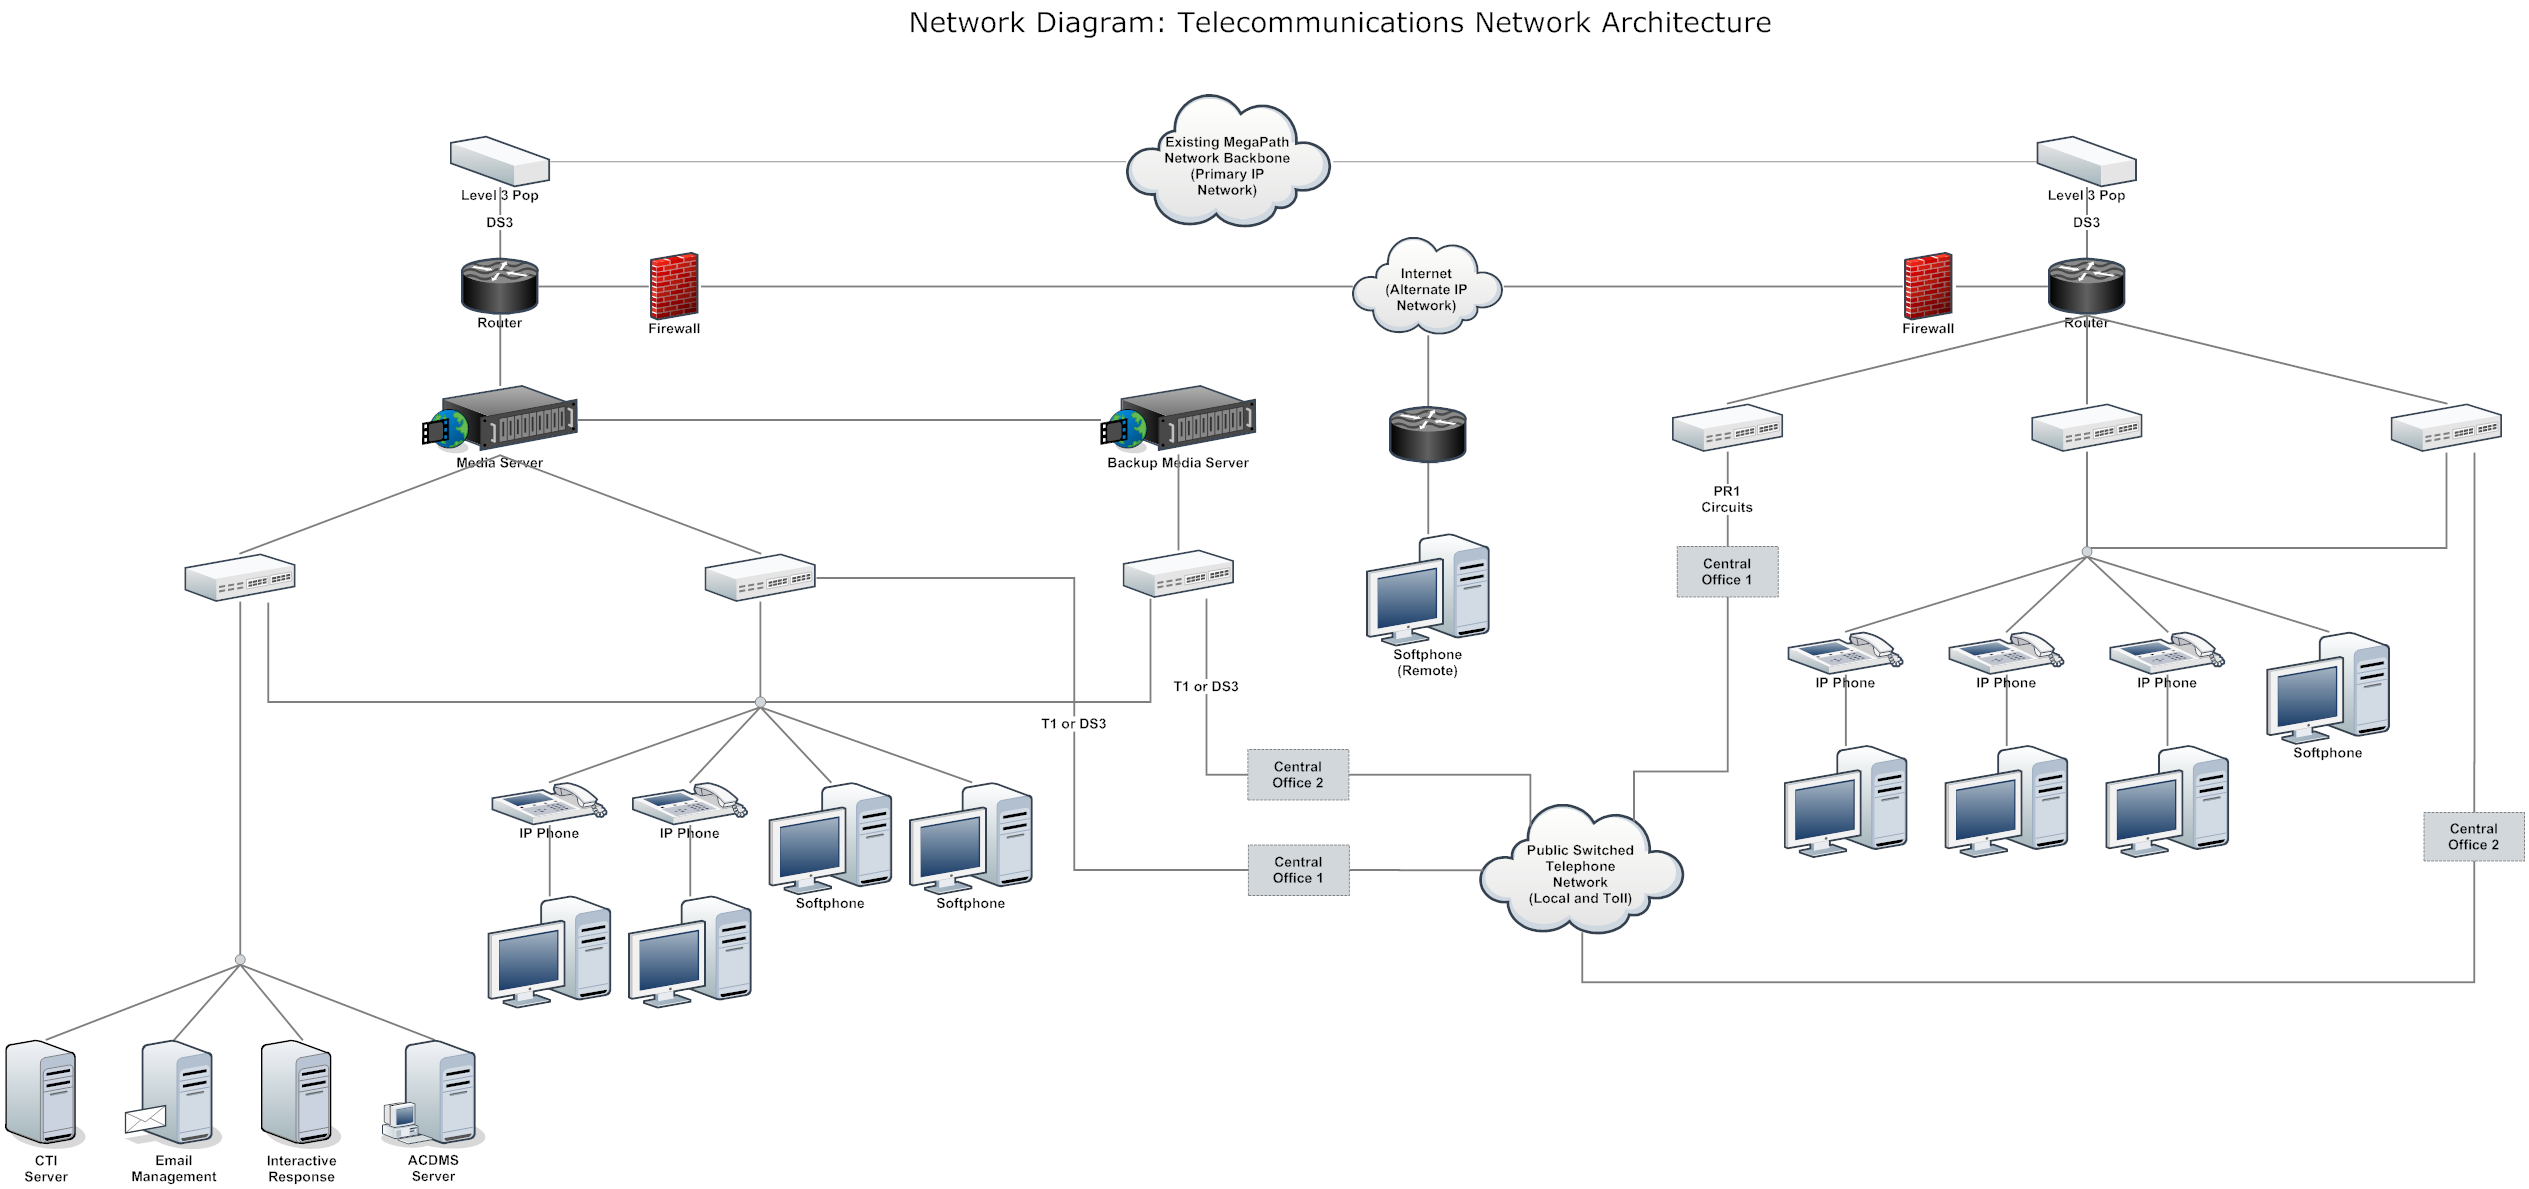 Network Diagram Example - Telecommunnications Network Architecture ...